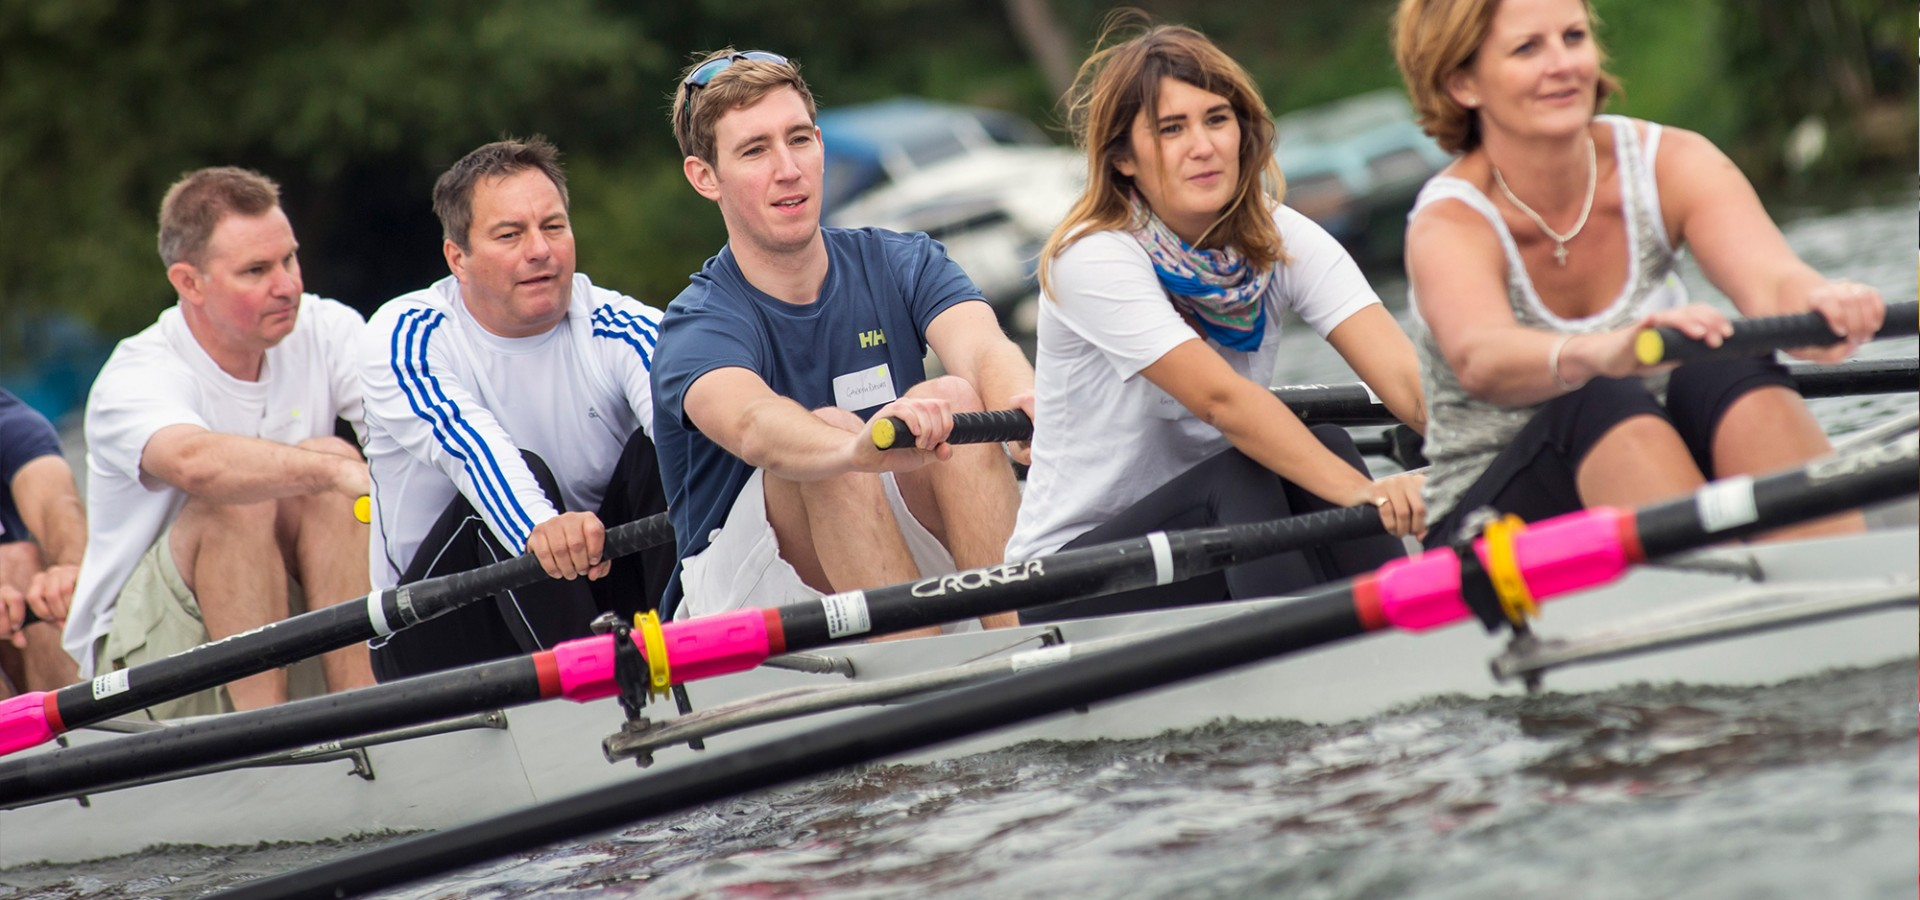 Octagon Scullers' Success